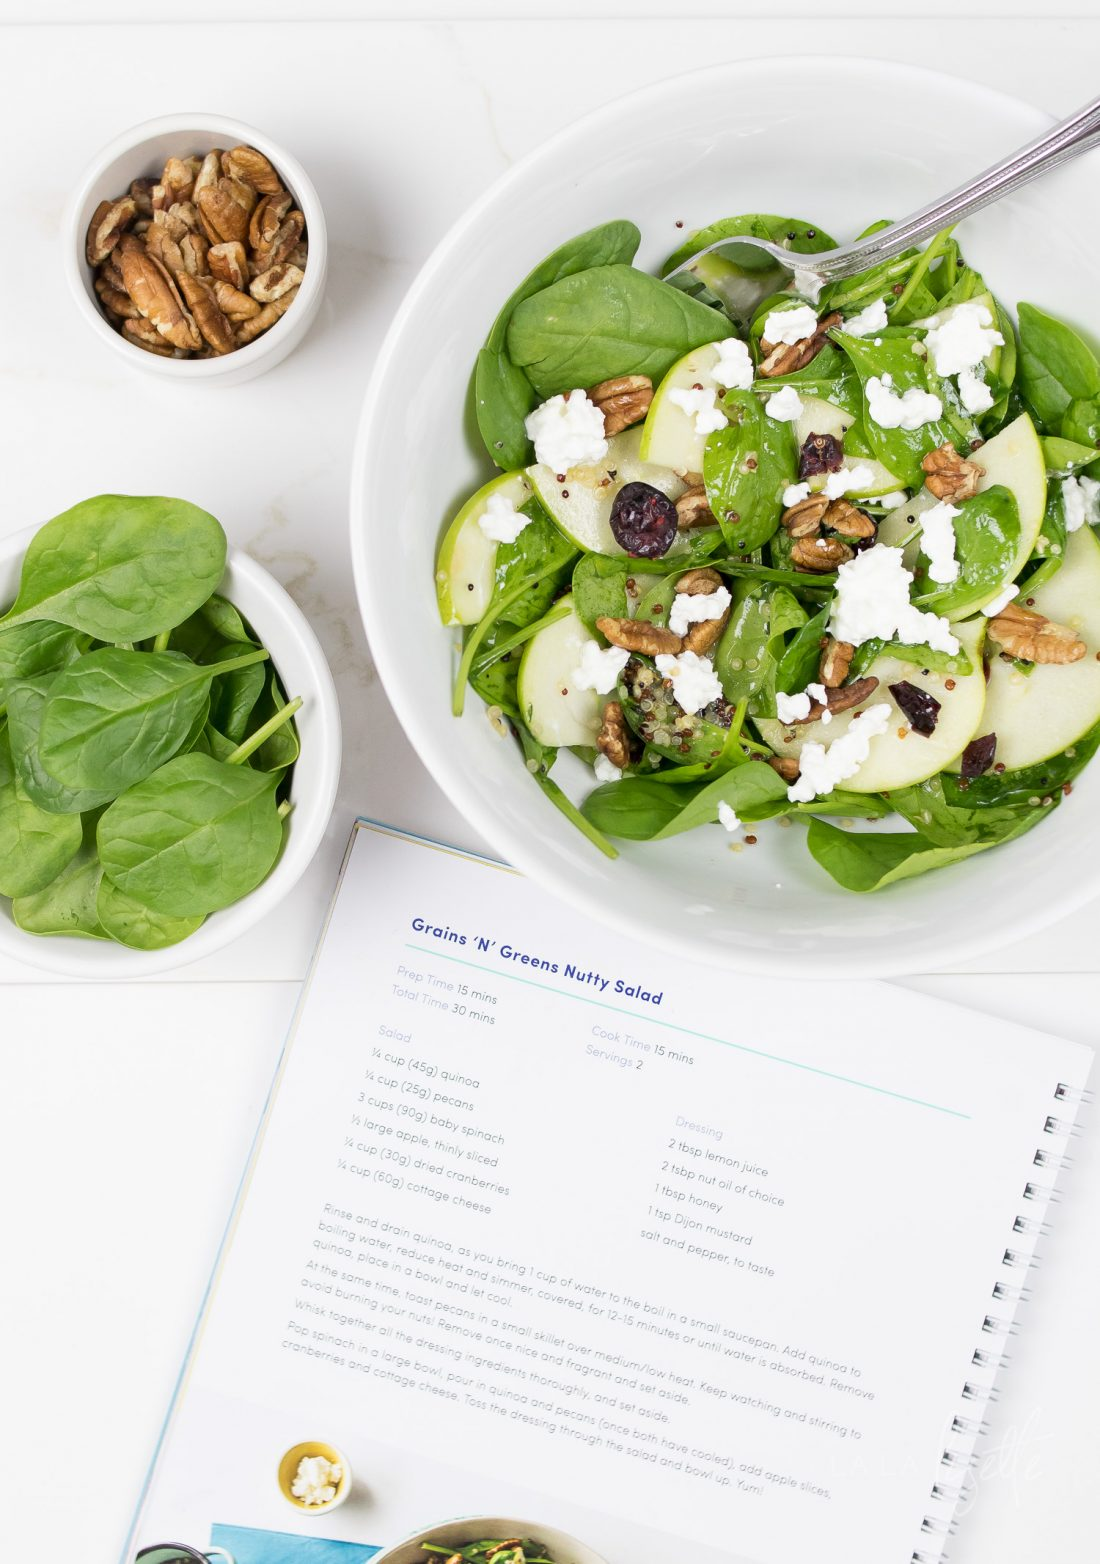 BodyBoss Superfood Nutrition Guide incorporates real, healthy foods like baby spinach, cottage cheese, fruits, and quinoa in its dishes